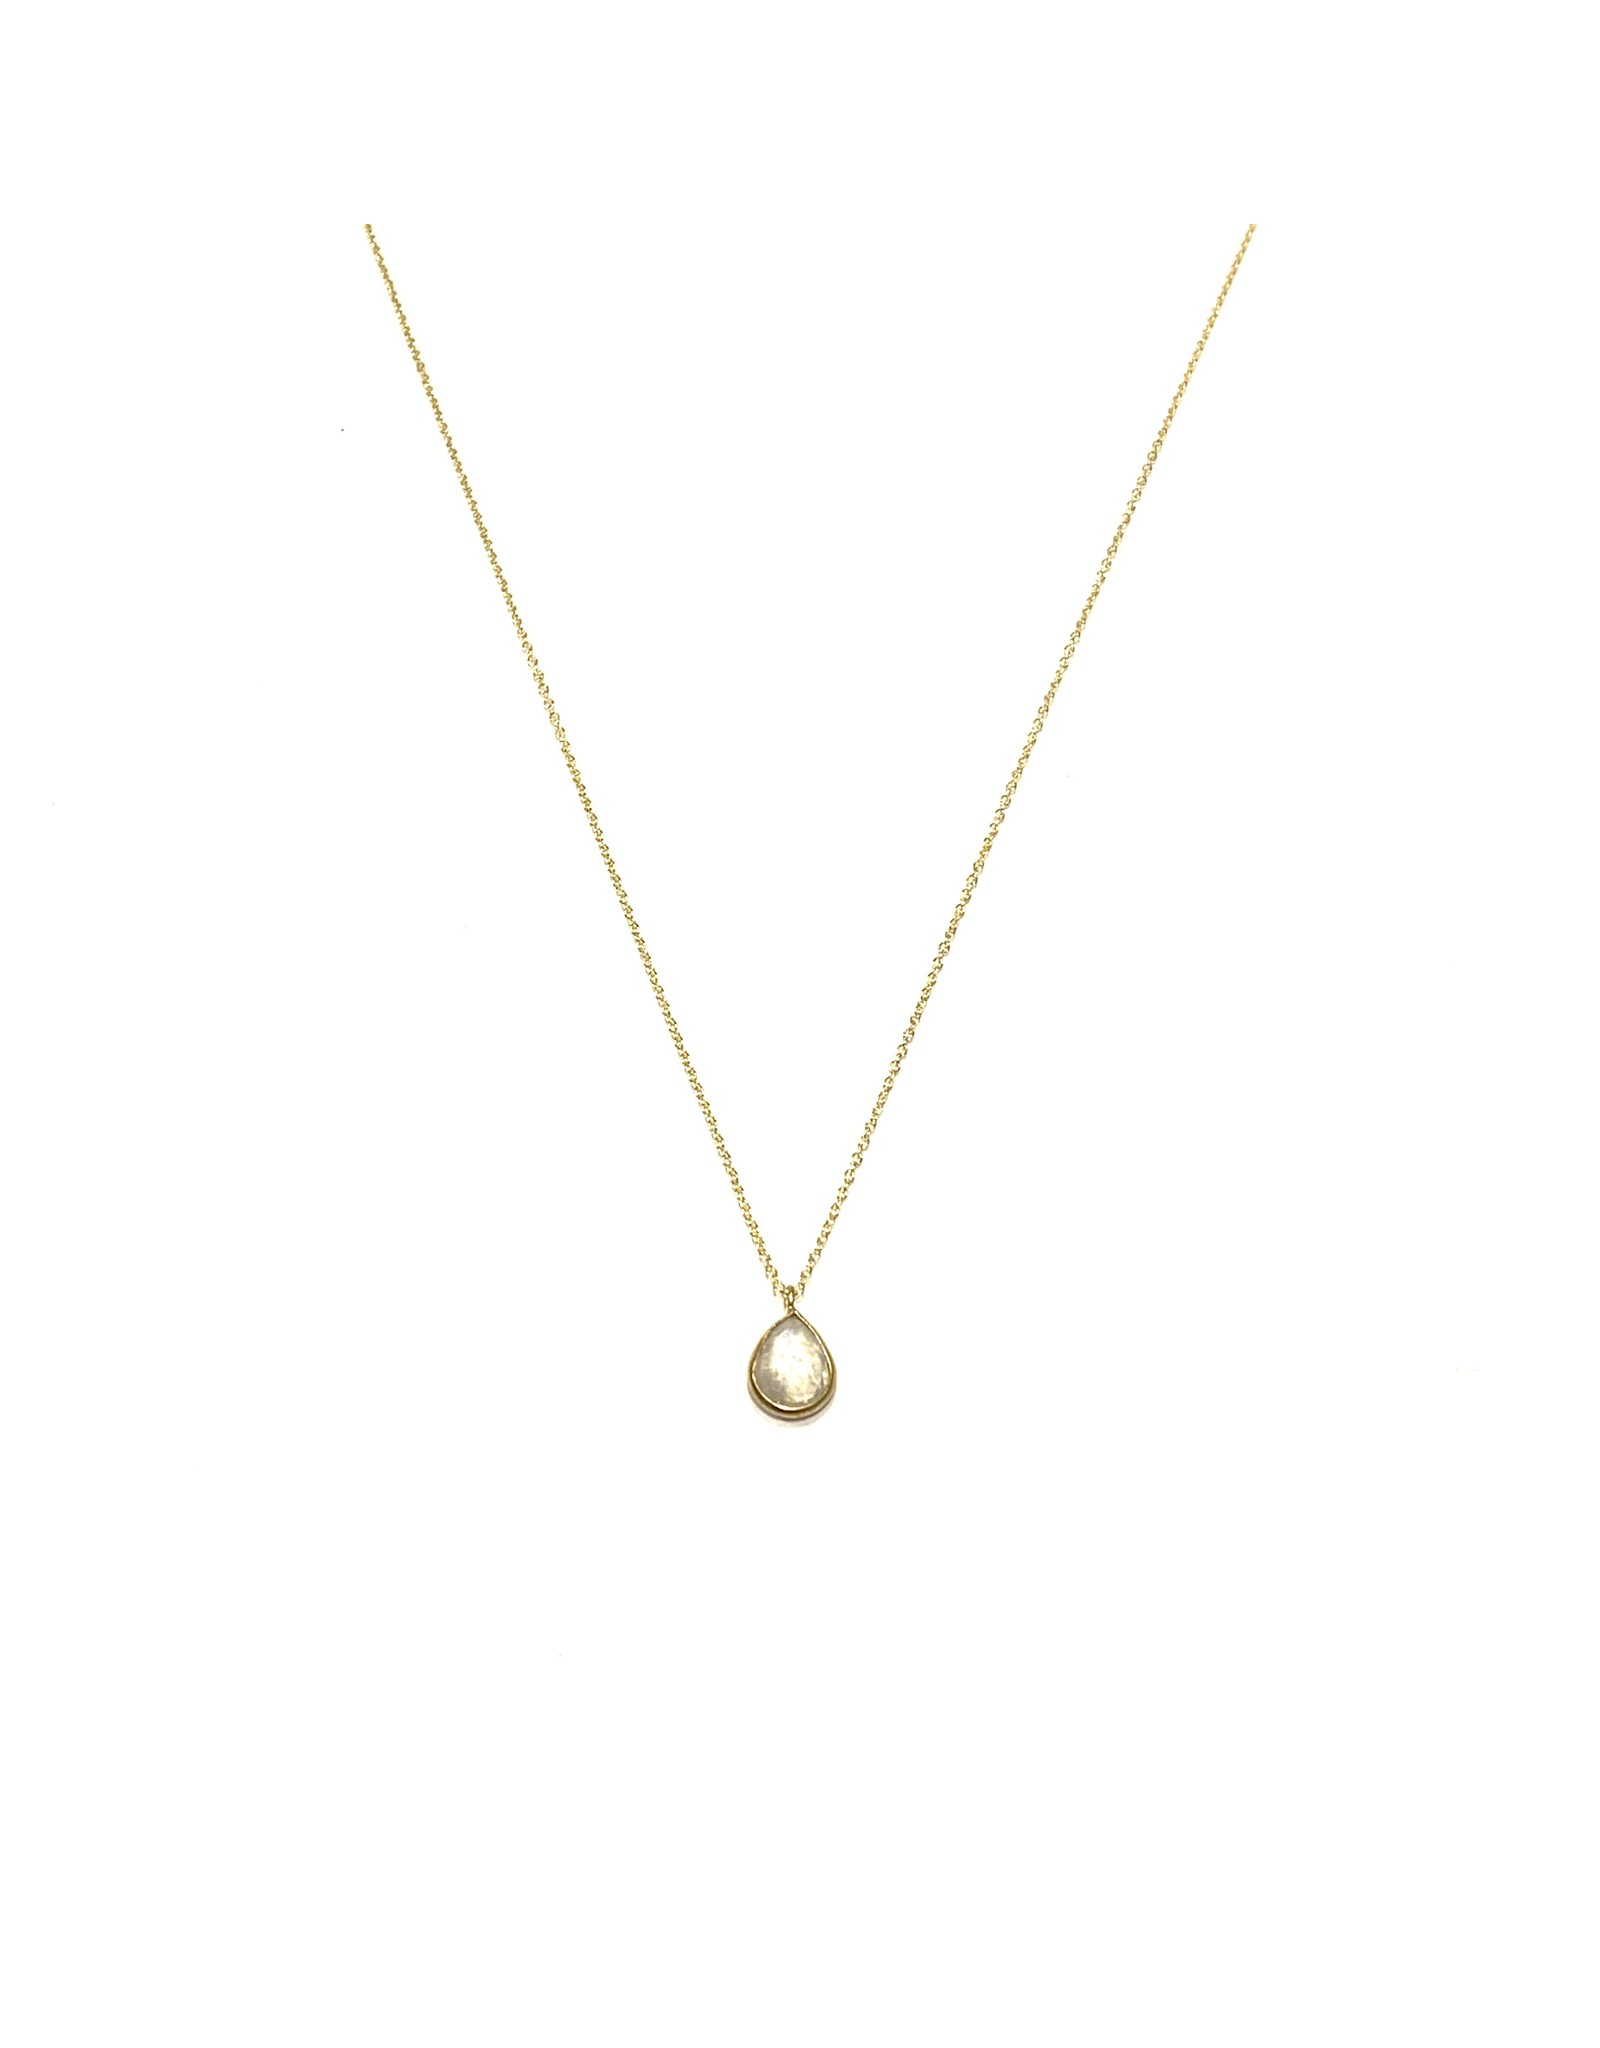 Bo Gold Necklace - Gold - Moonstone